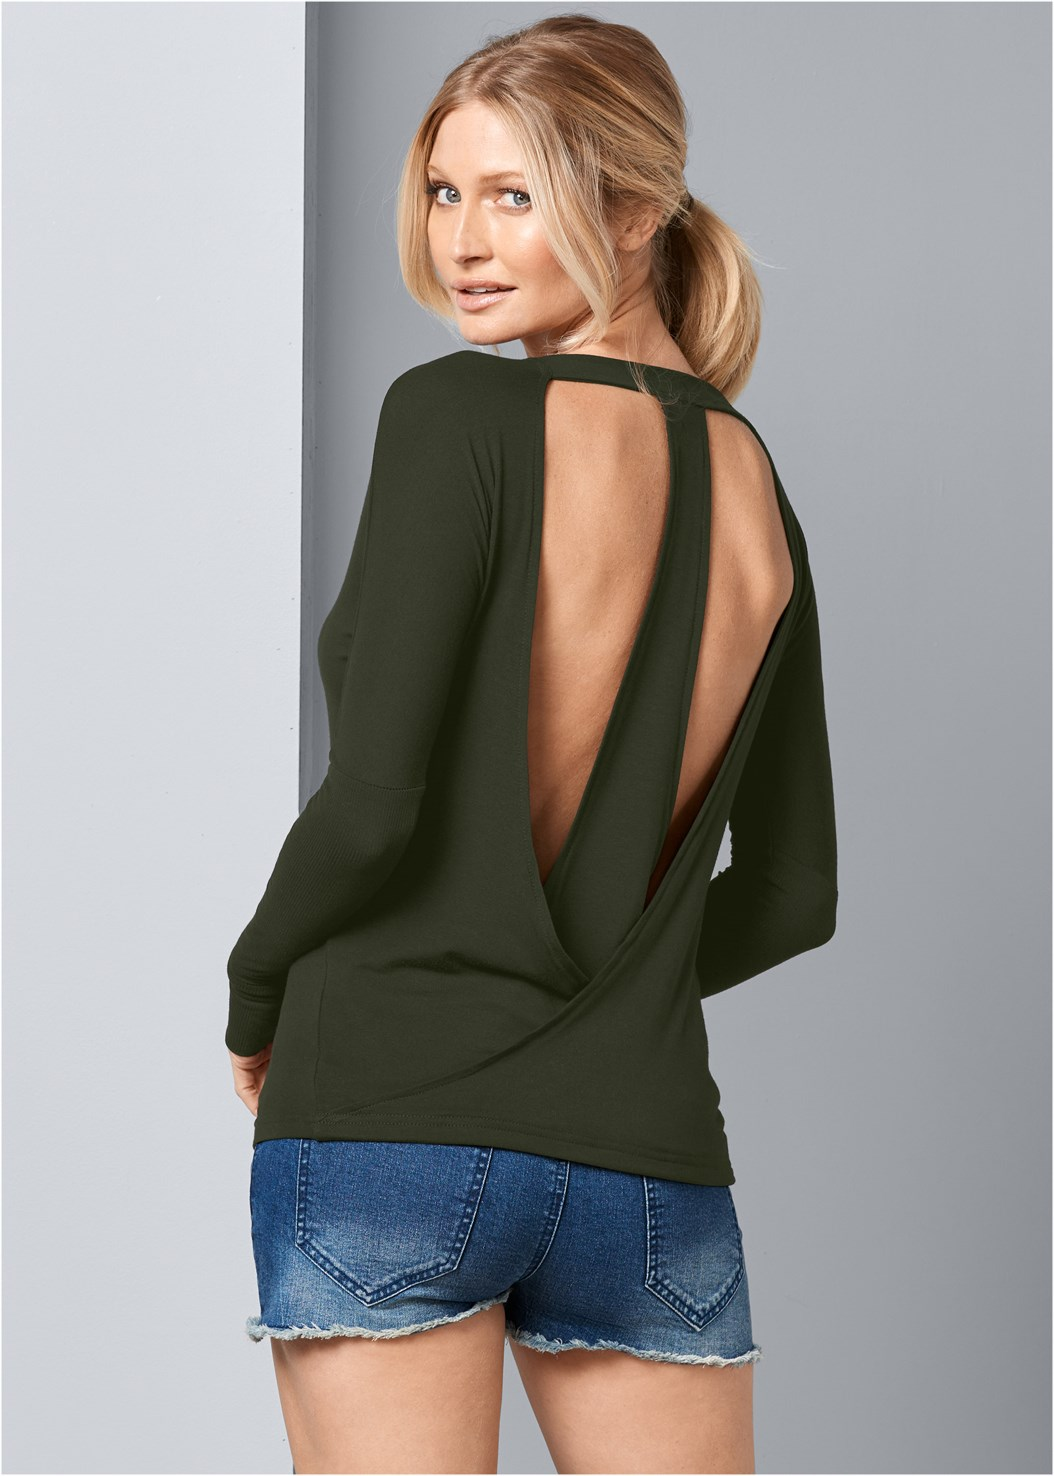 Open Back Active Top,Frayed Cut Off Jean Shorts,Strap Solutions